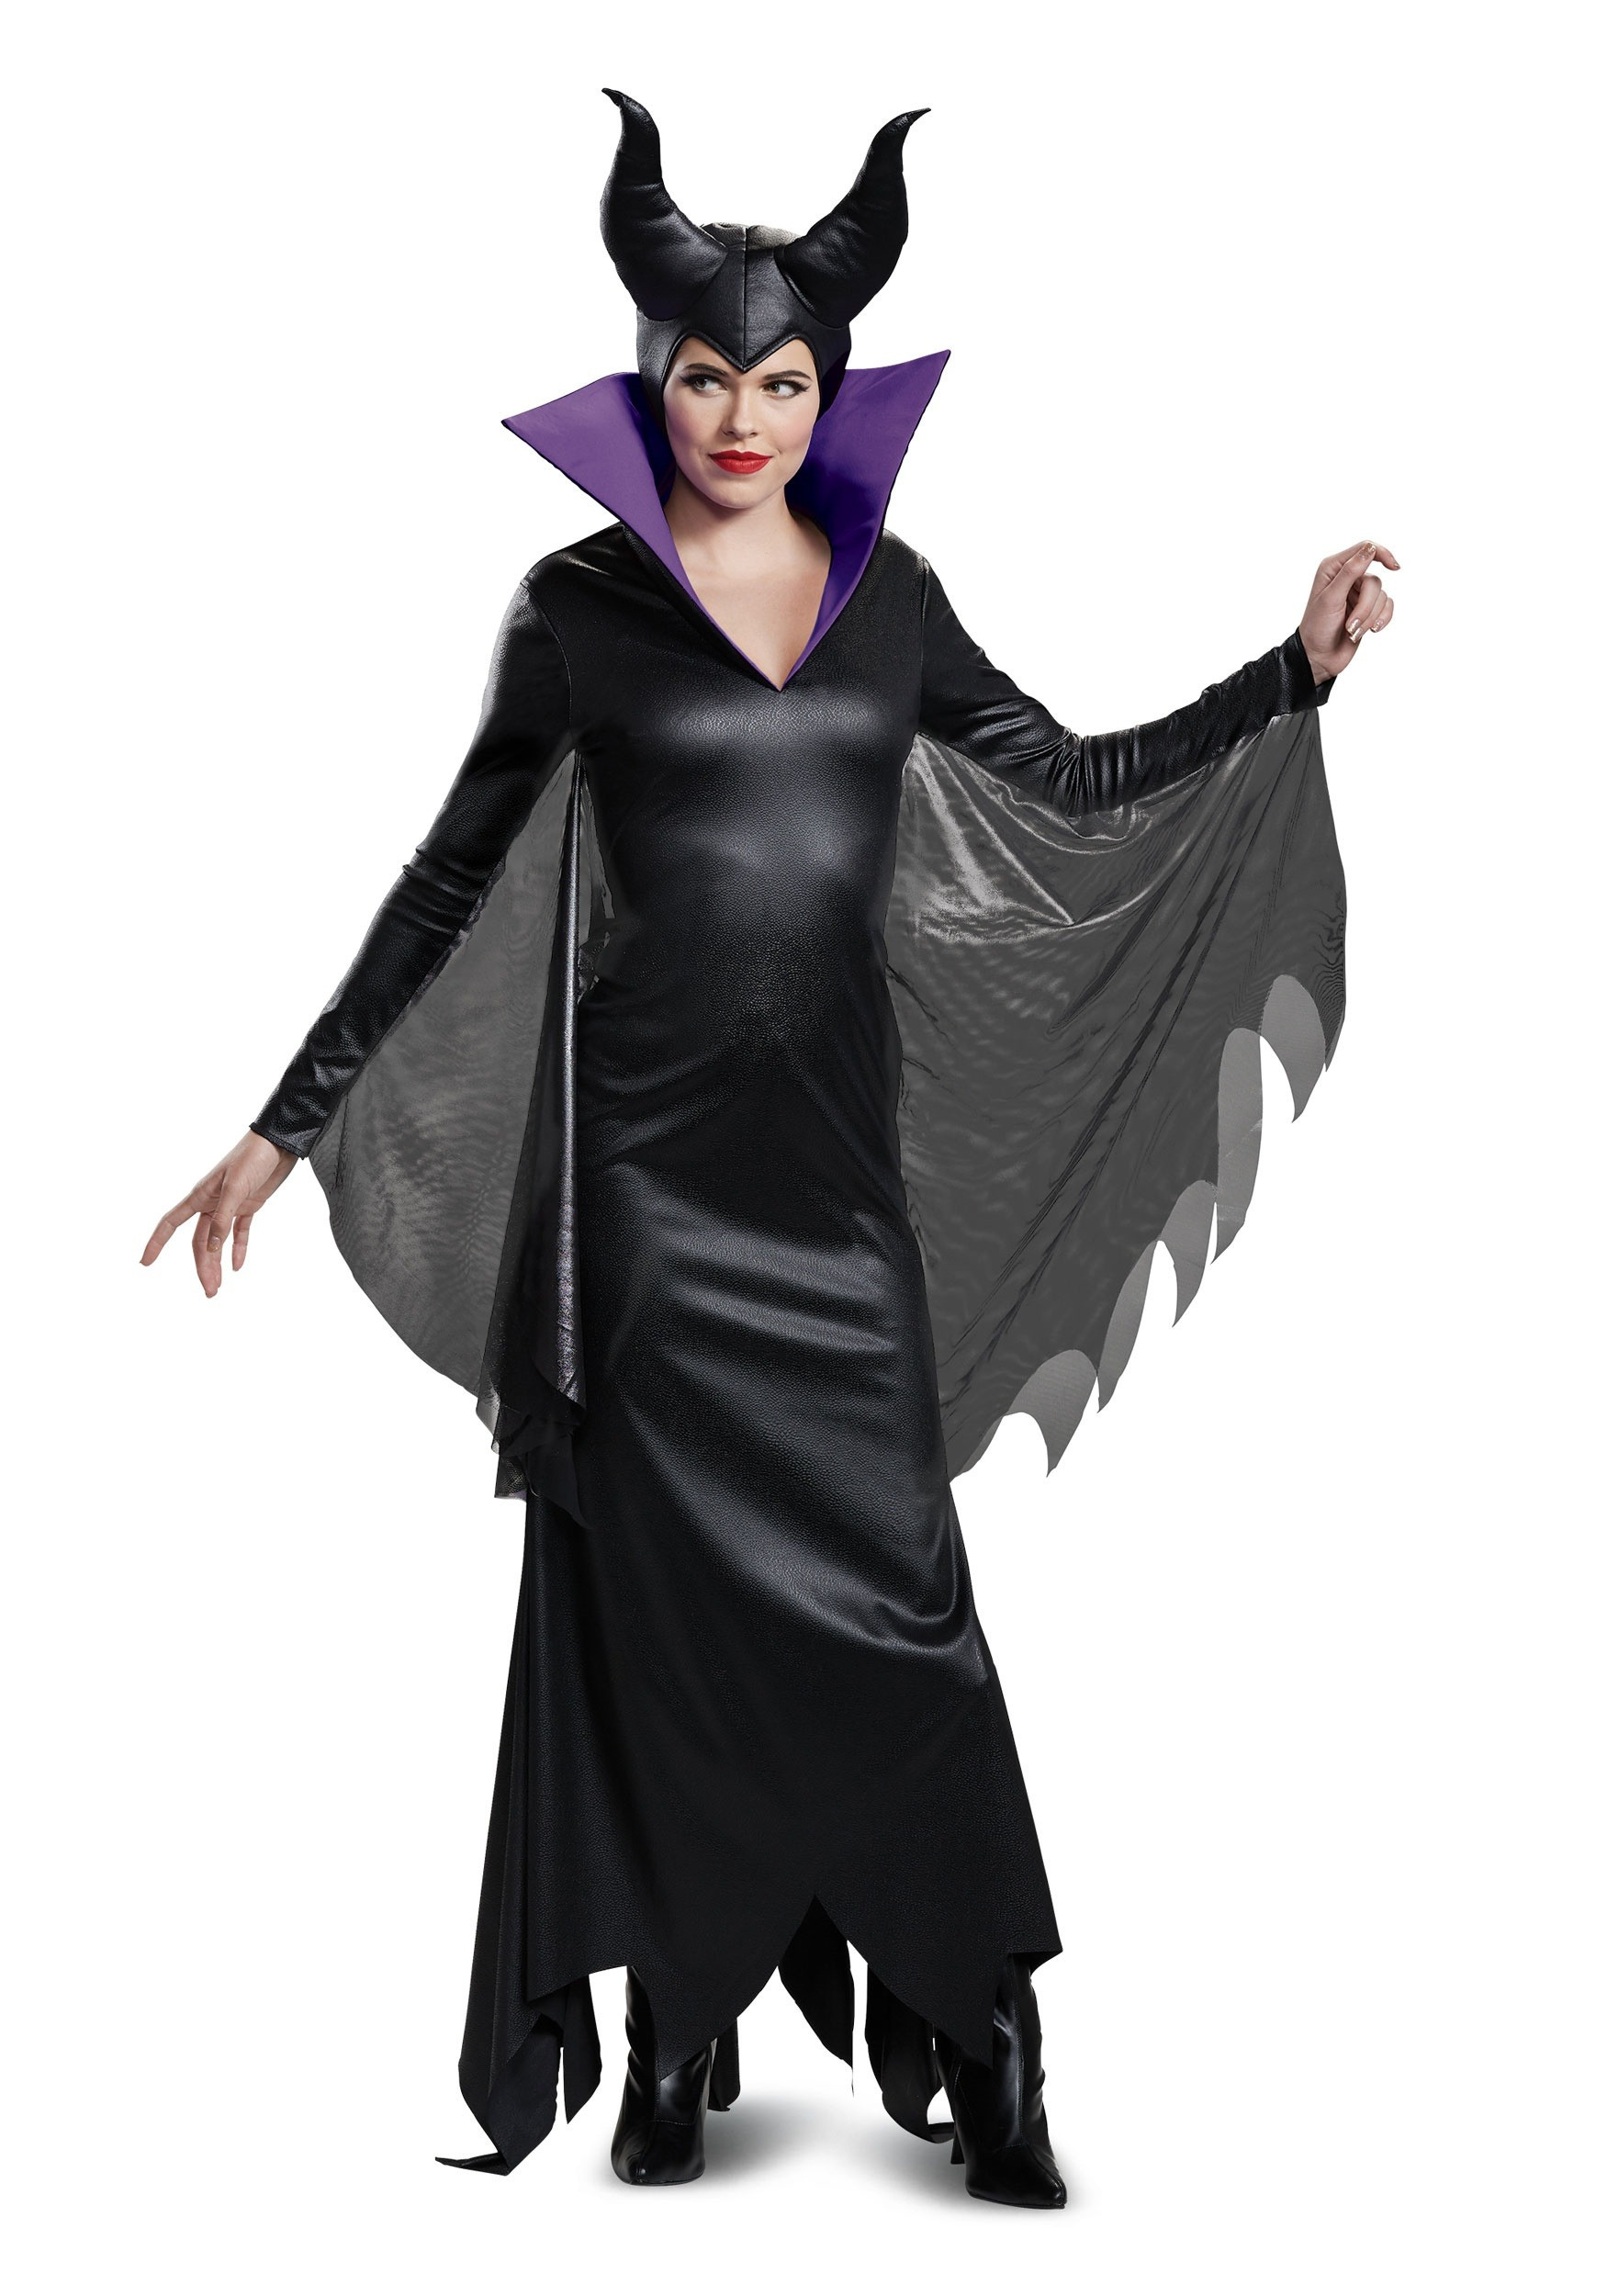 Best ideas about Maleficent DIY Costumes . Save or Pin Deluxe Maleficent Adult Costume Now.